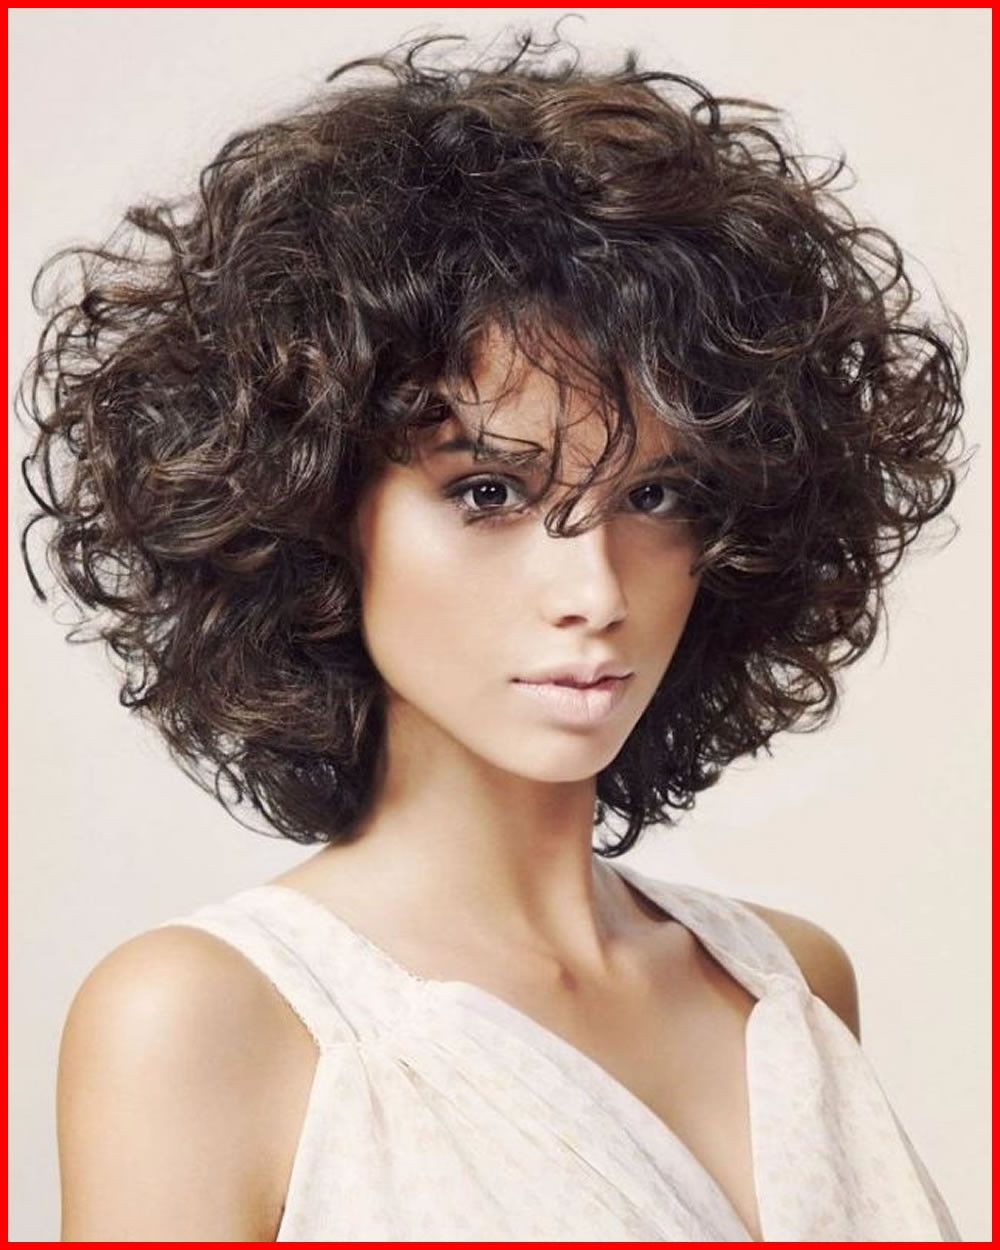 Wavy Haircuts 132796 Curly Or Wavy Short Haircuts For 2018 25 Great Regarding Short Haircuts For Women Curly (View 18 of 25)